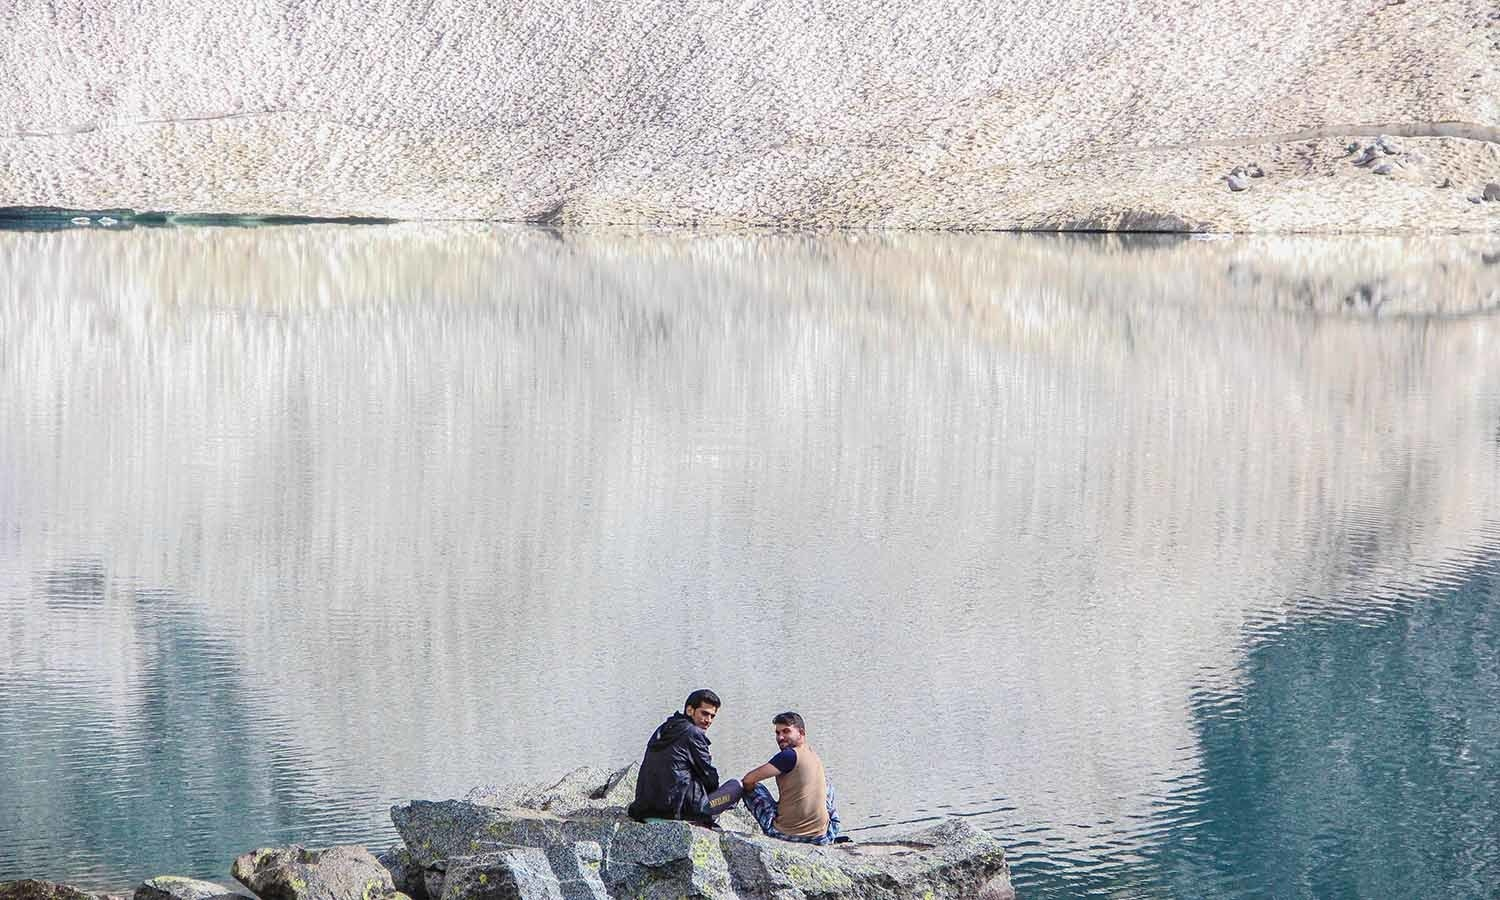 The hard trek is worth the views at the glacial lake.  Trekkers rest at the edge of  Bishigram Lake